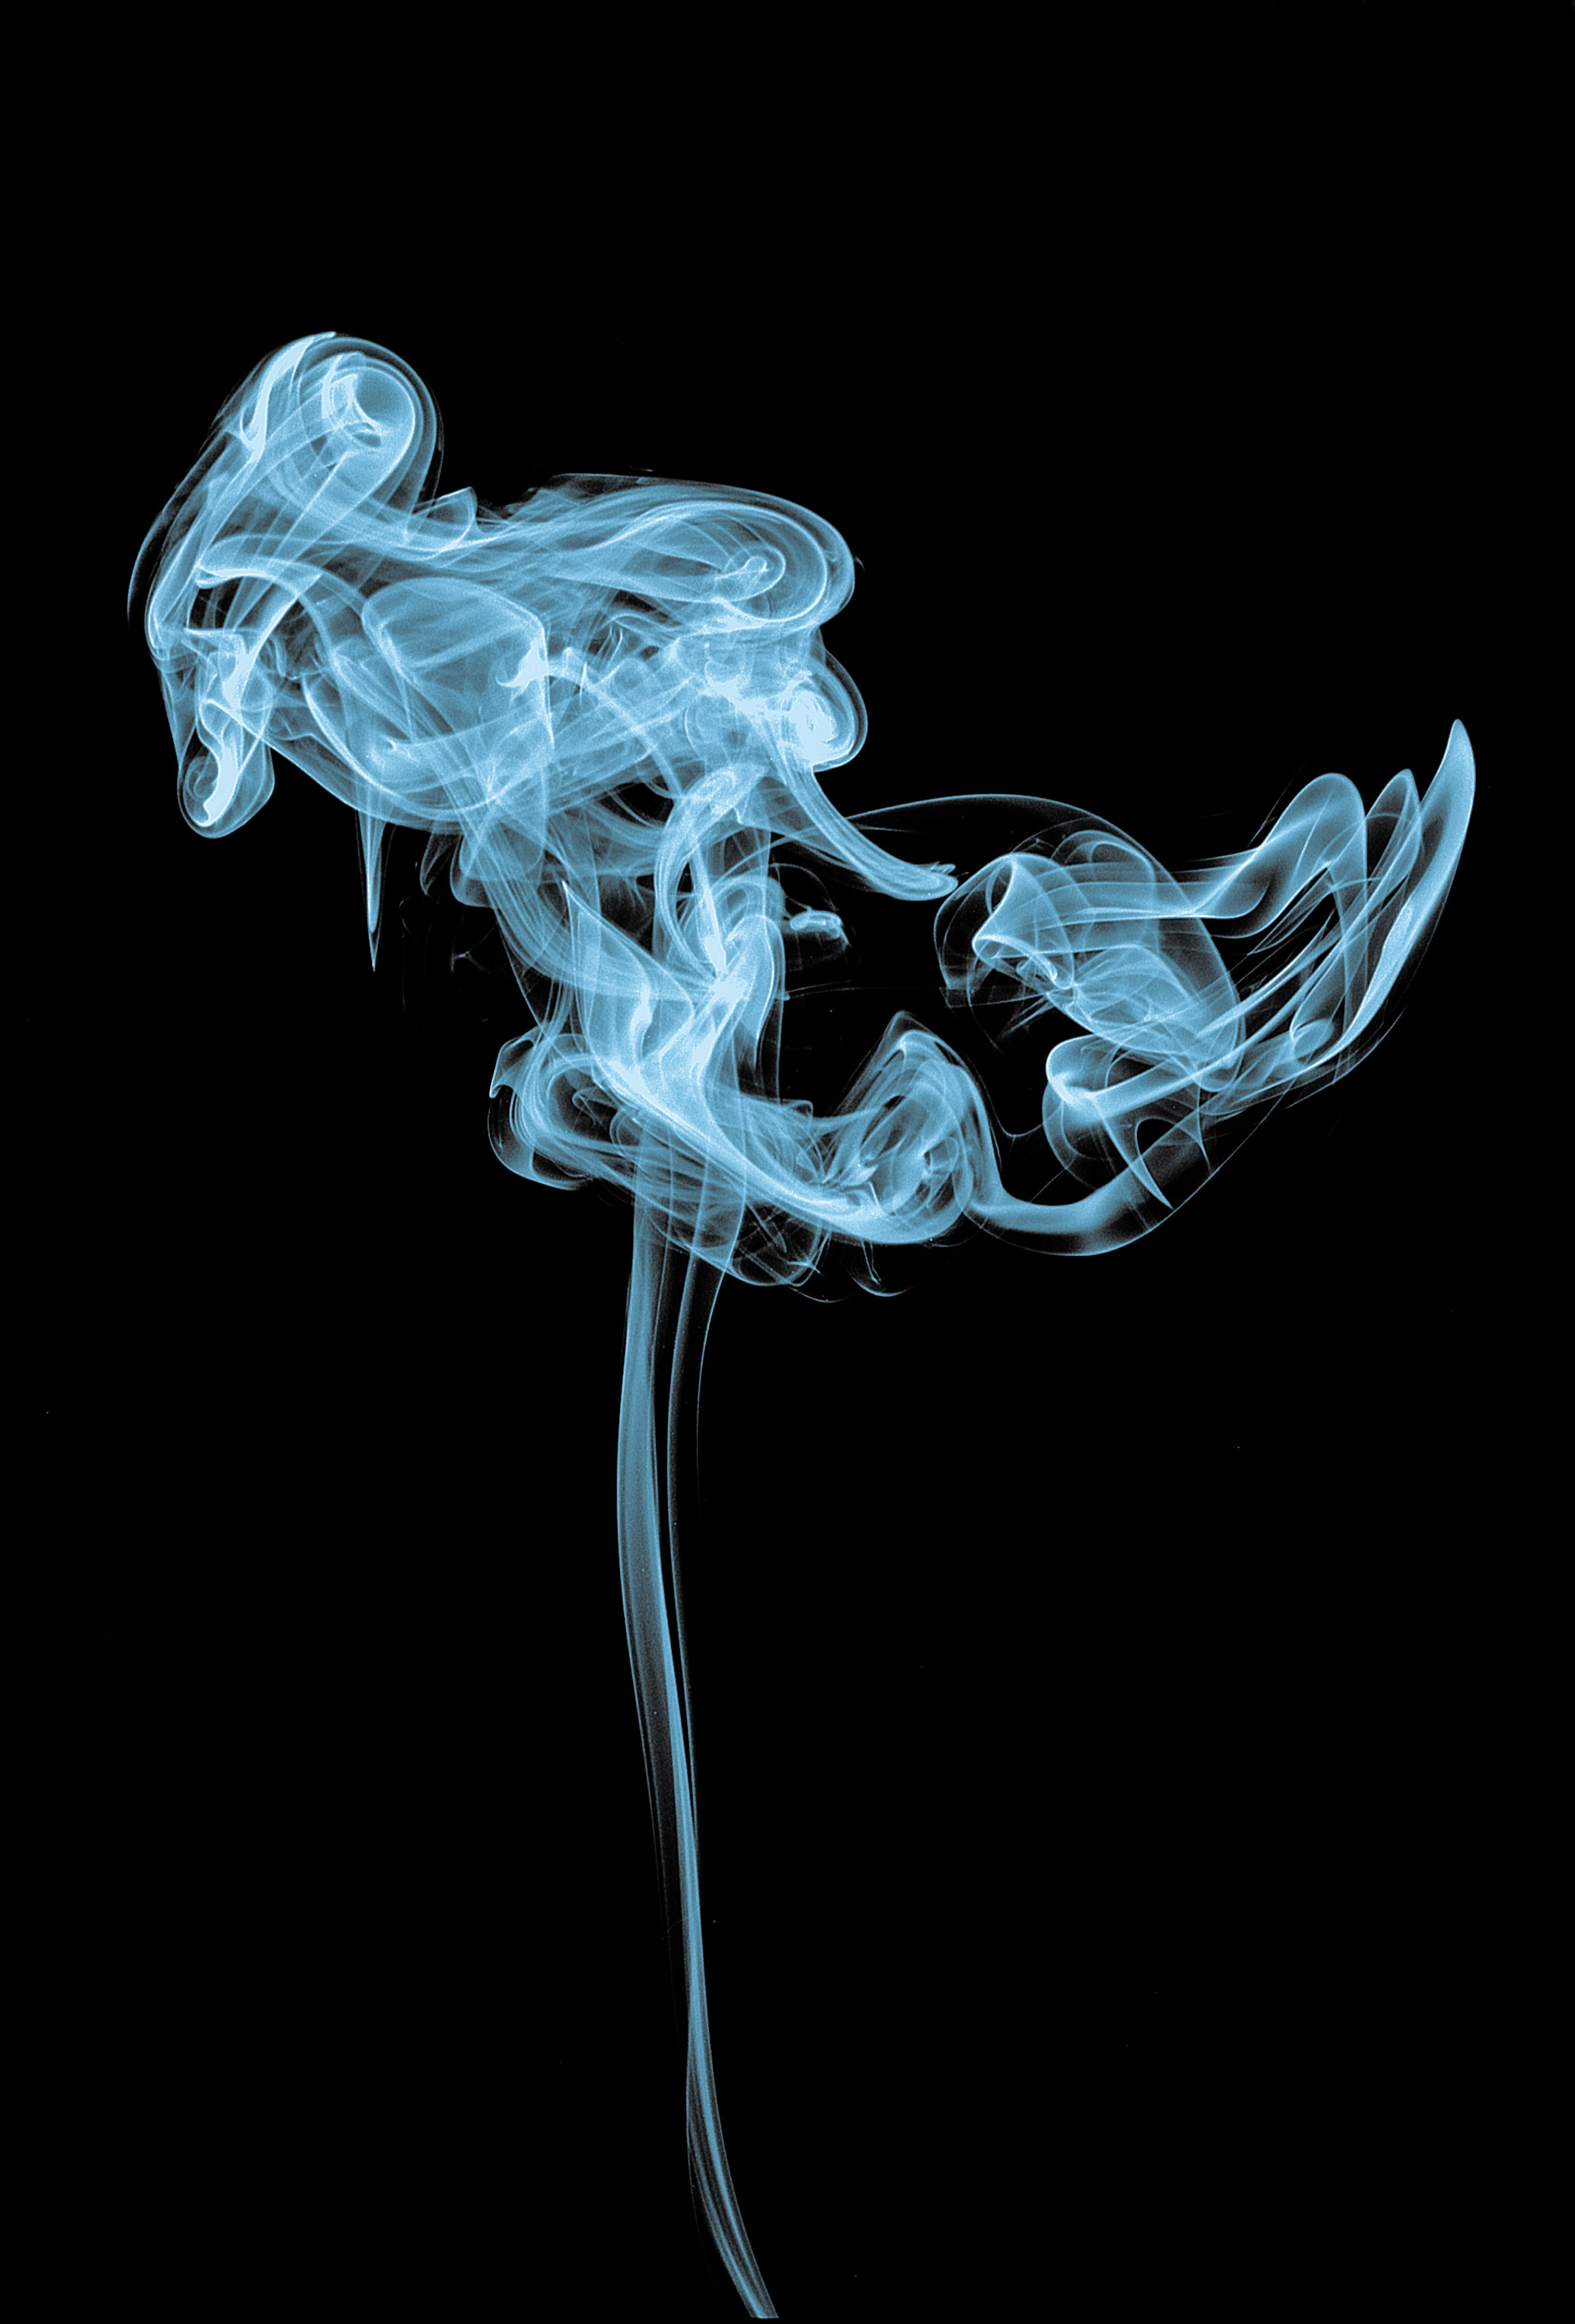 white smoke inside the dark room